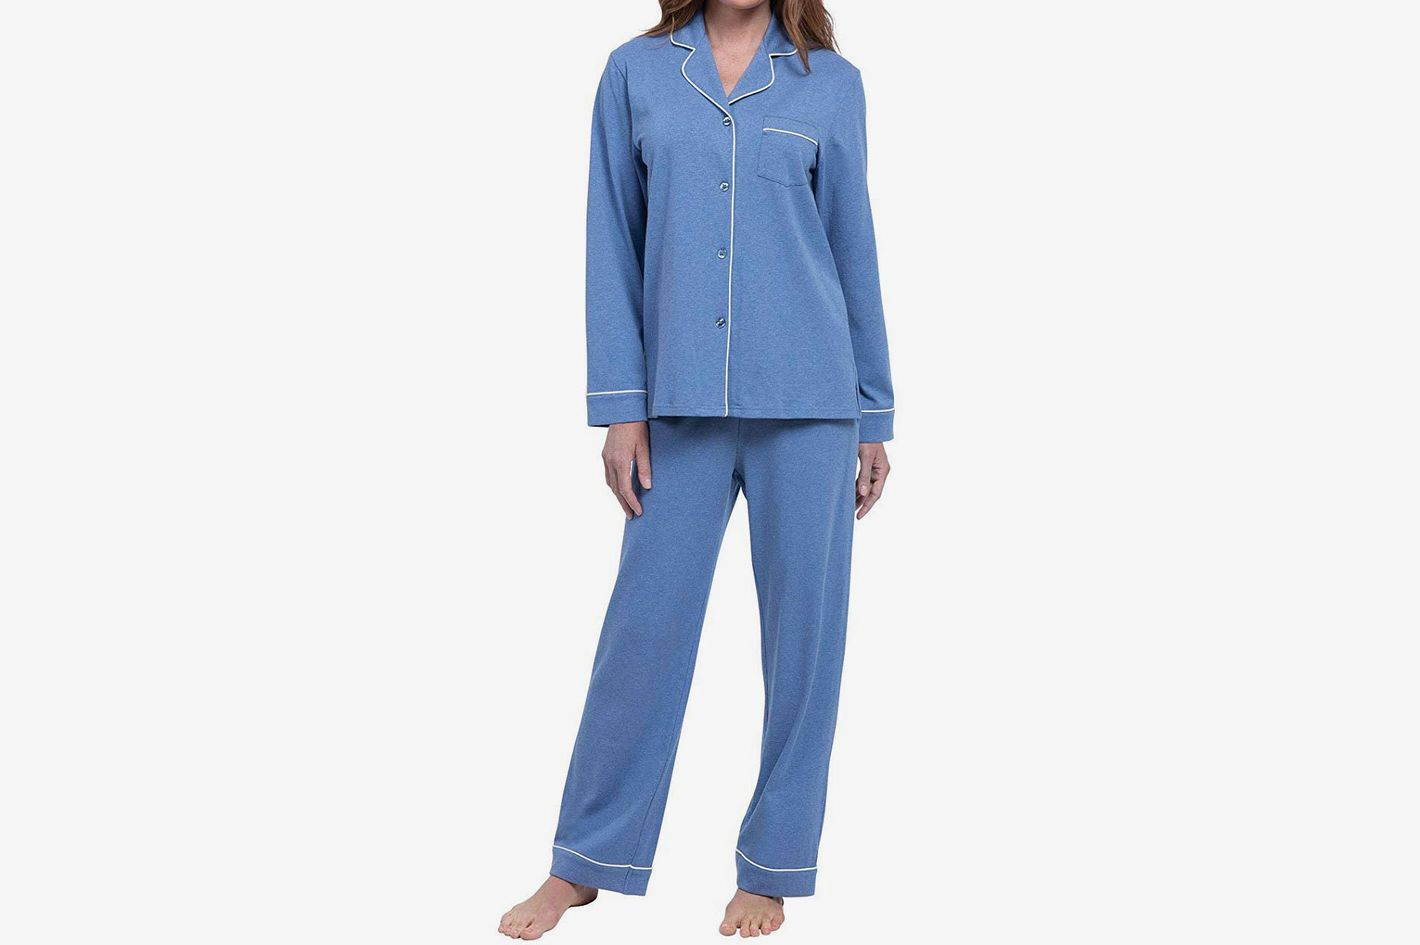 f7559fdaaa PajamaGram Pajamas for Women - Cotton Jersey Womens Pajamas